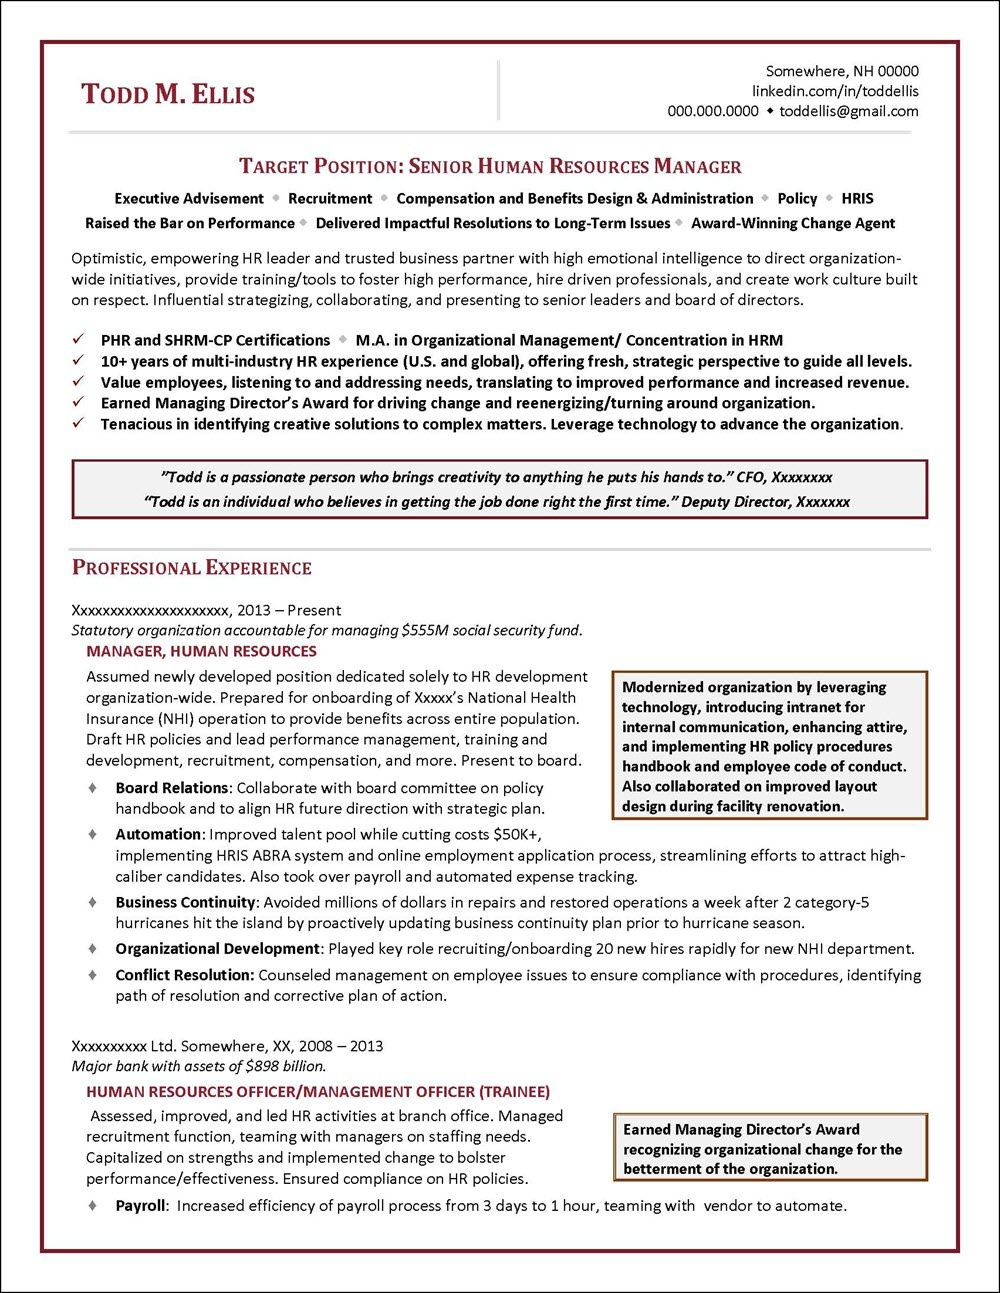 human resources manager resume resources, ms word format download best website for templates application letter a graphic designer